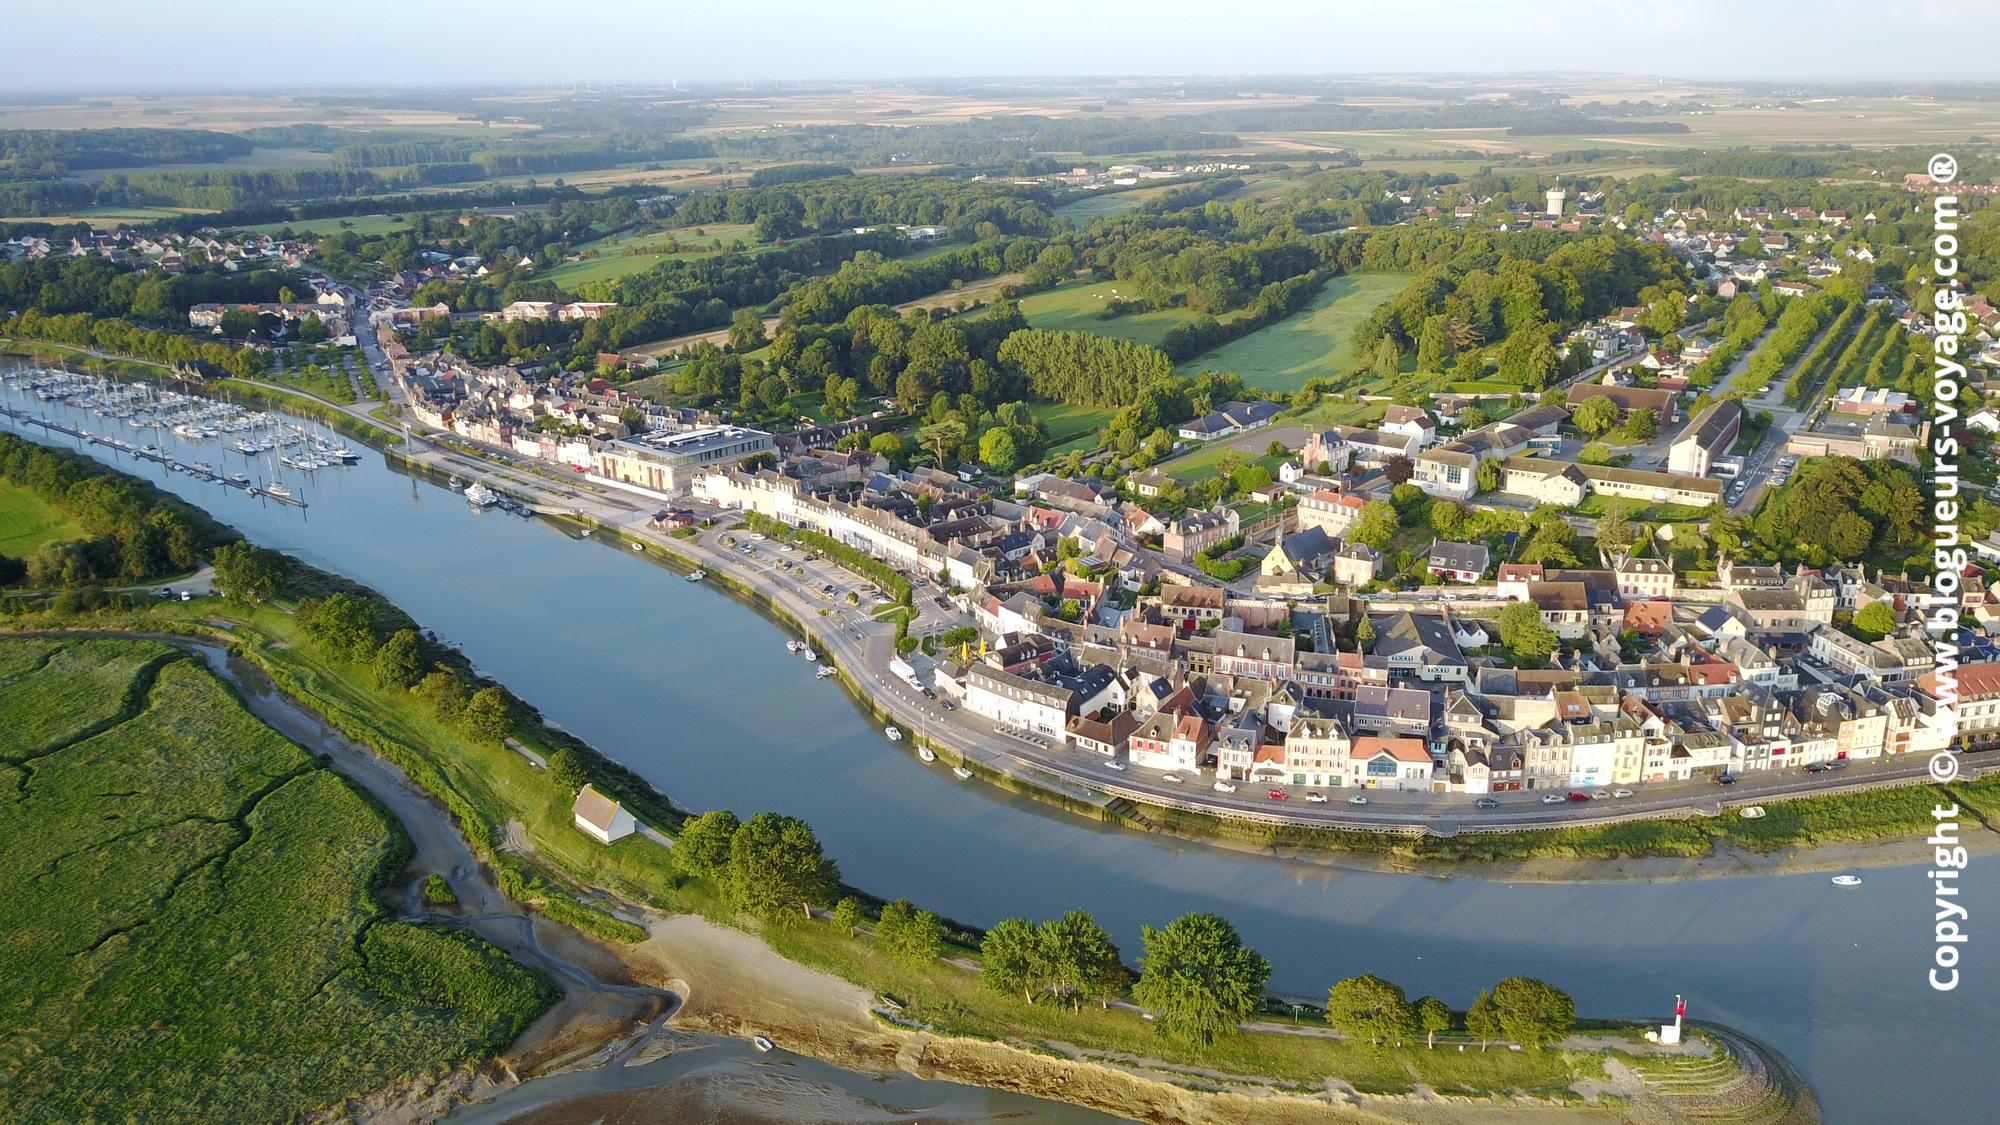 baie-somme-saint-valery-sur-somme-drone-15